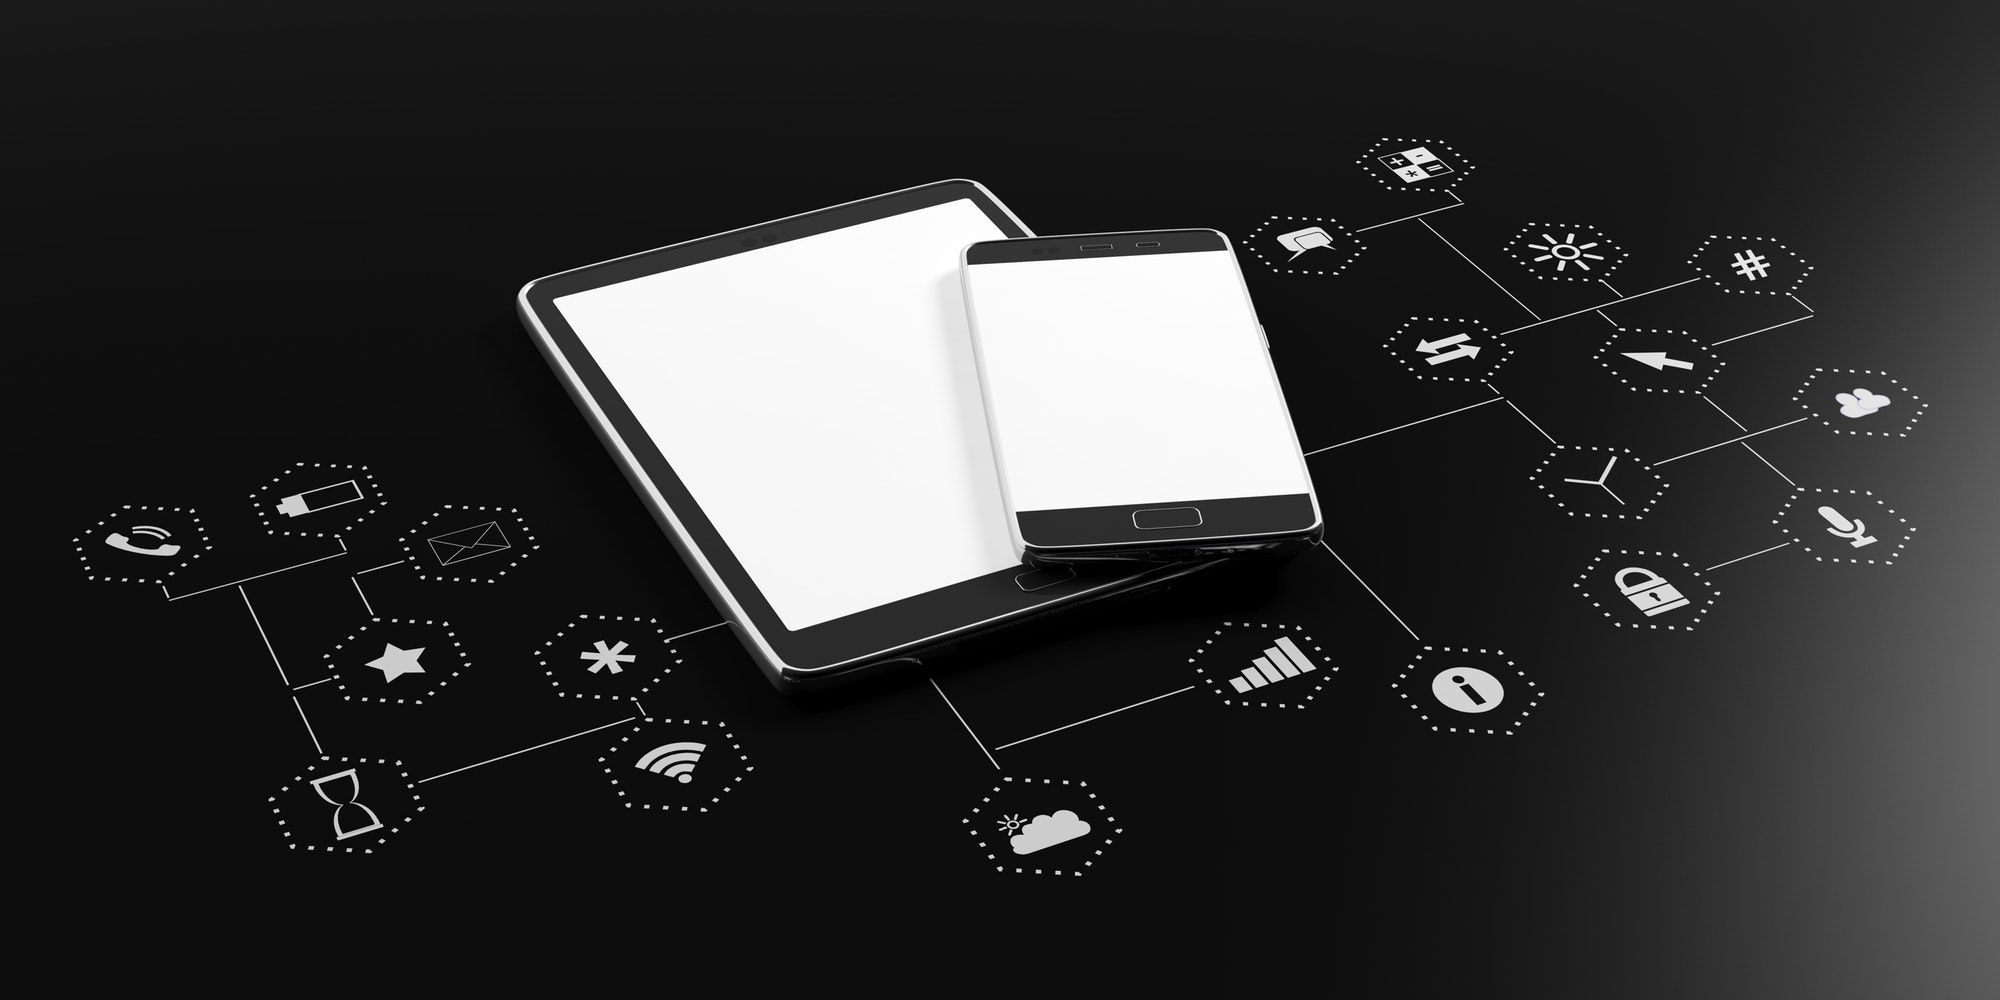 Smartphone, tablet with blank screen on black background with app icons. 3d illustration